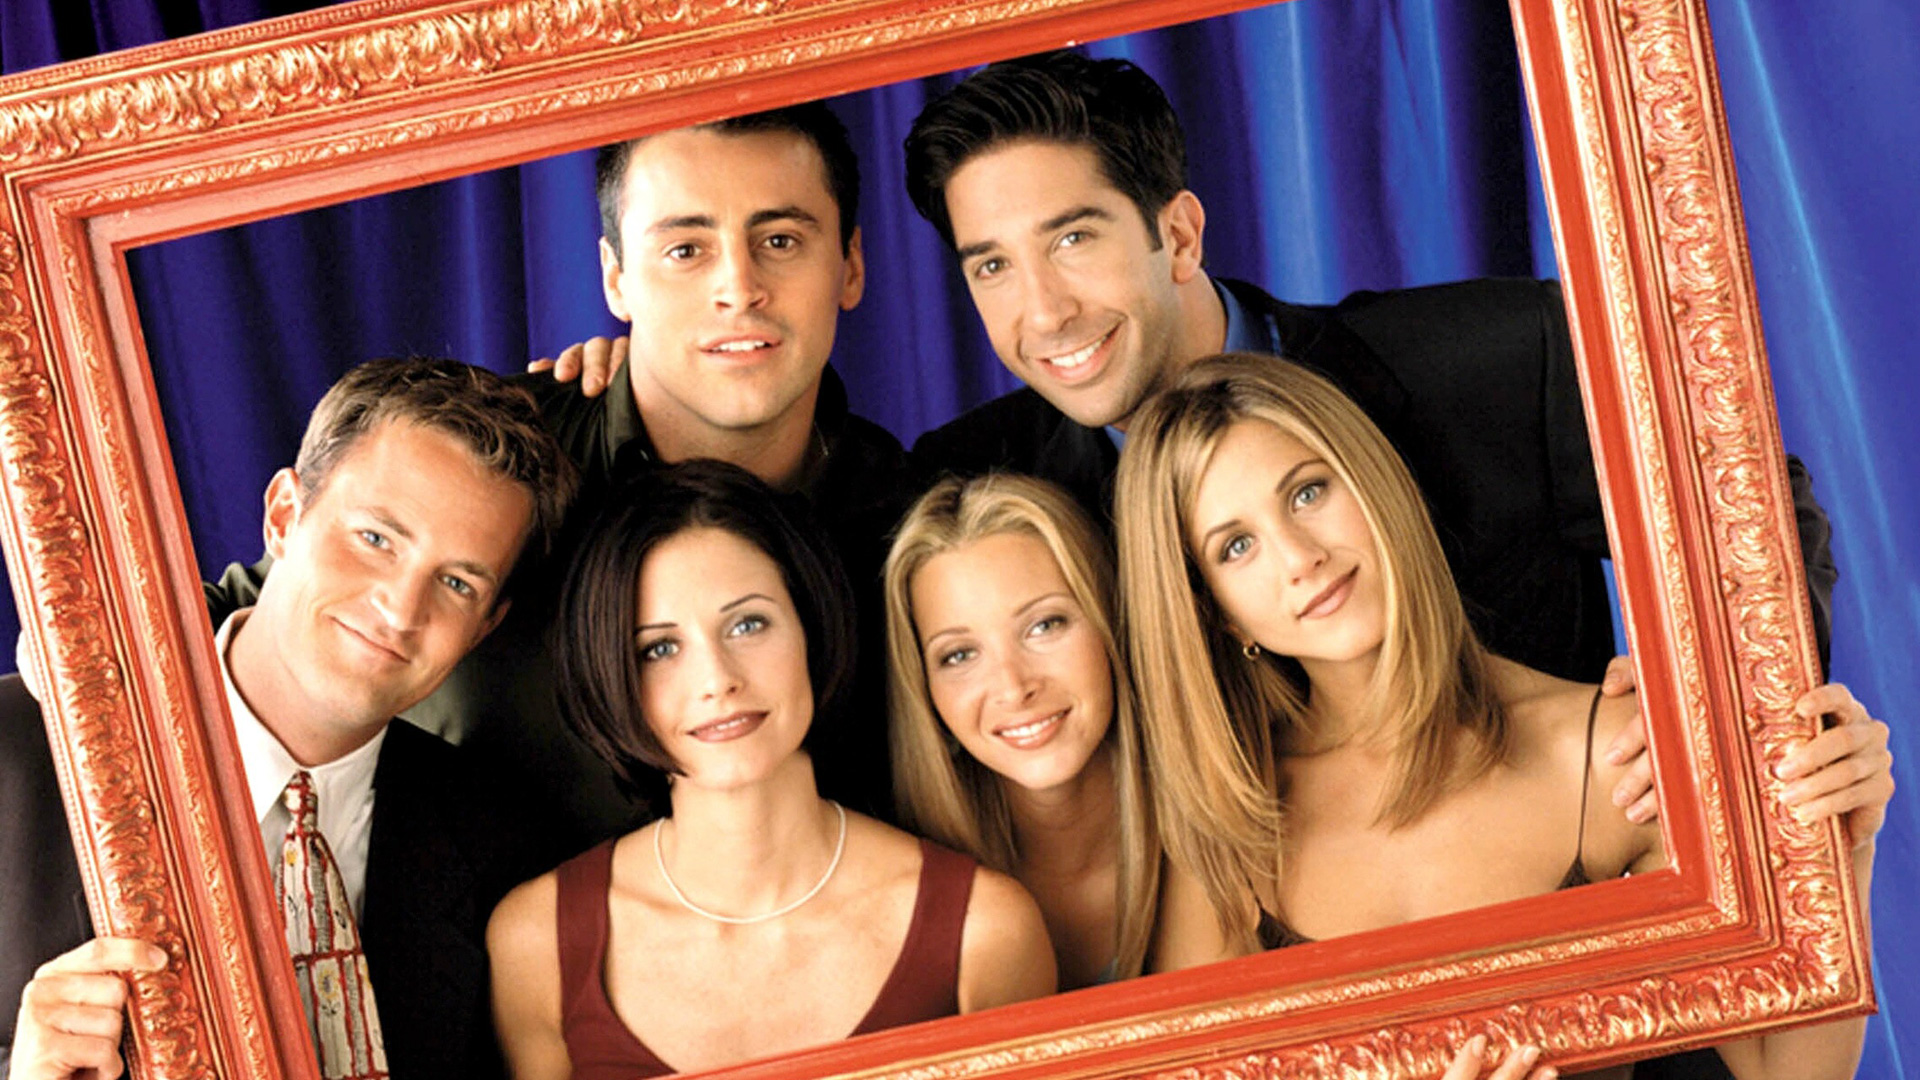 Warner Channel celebra el valor de la amistad con un maratón de 'Friends'